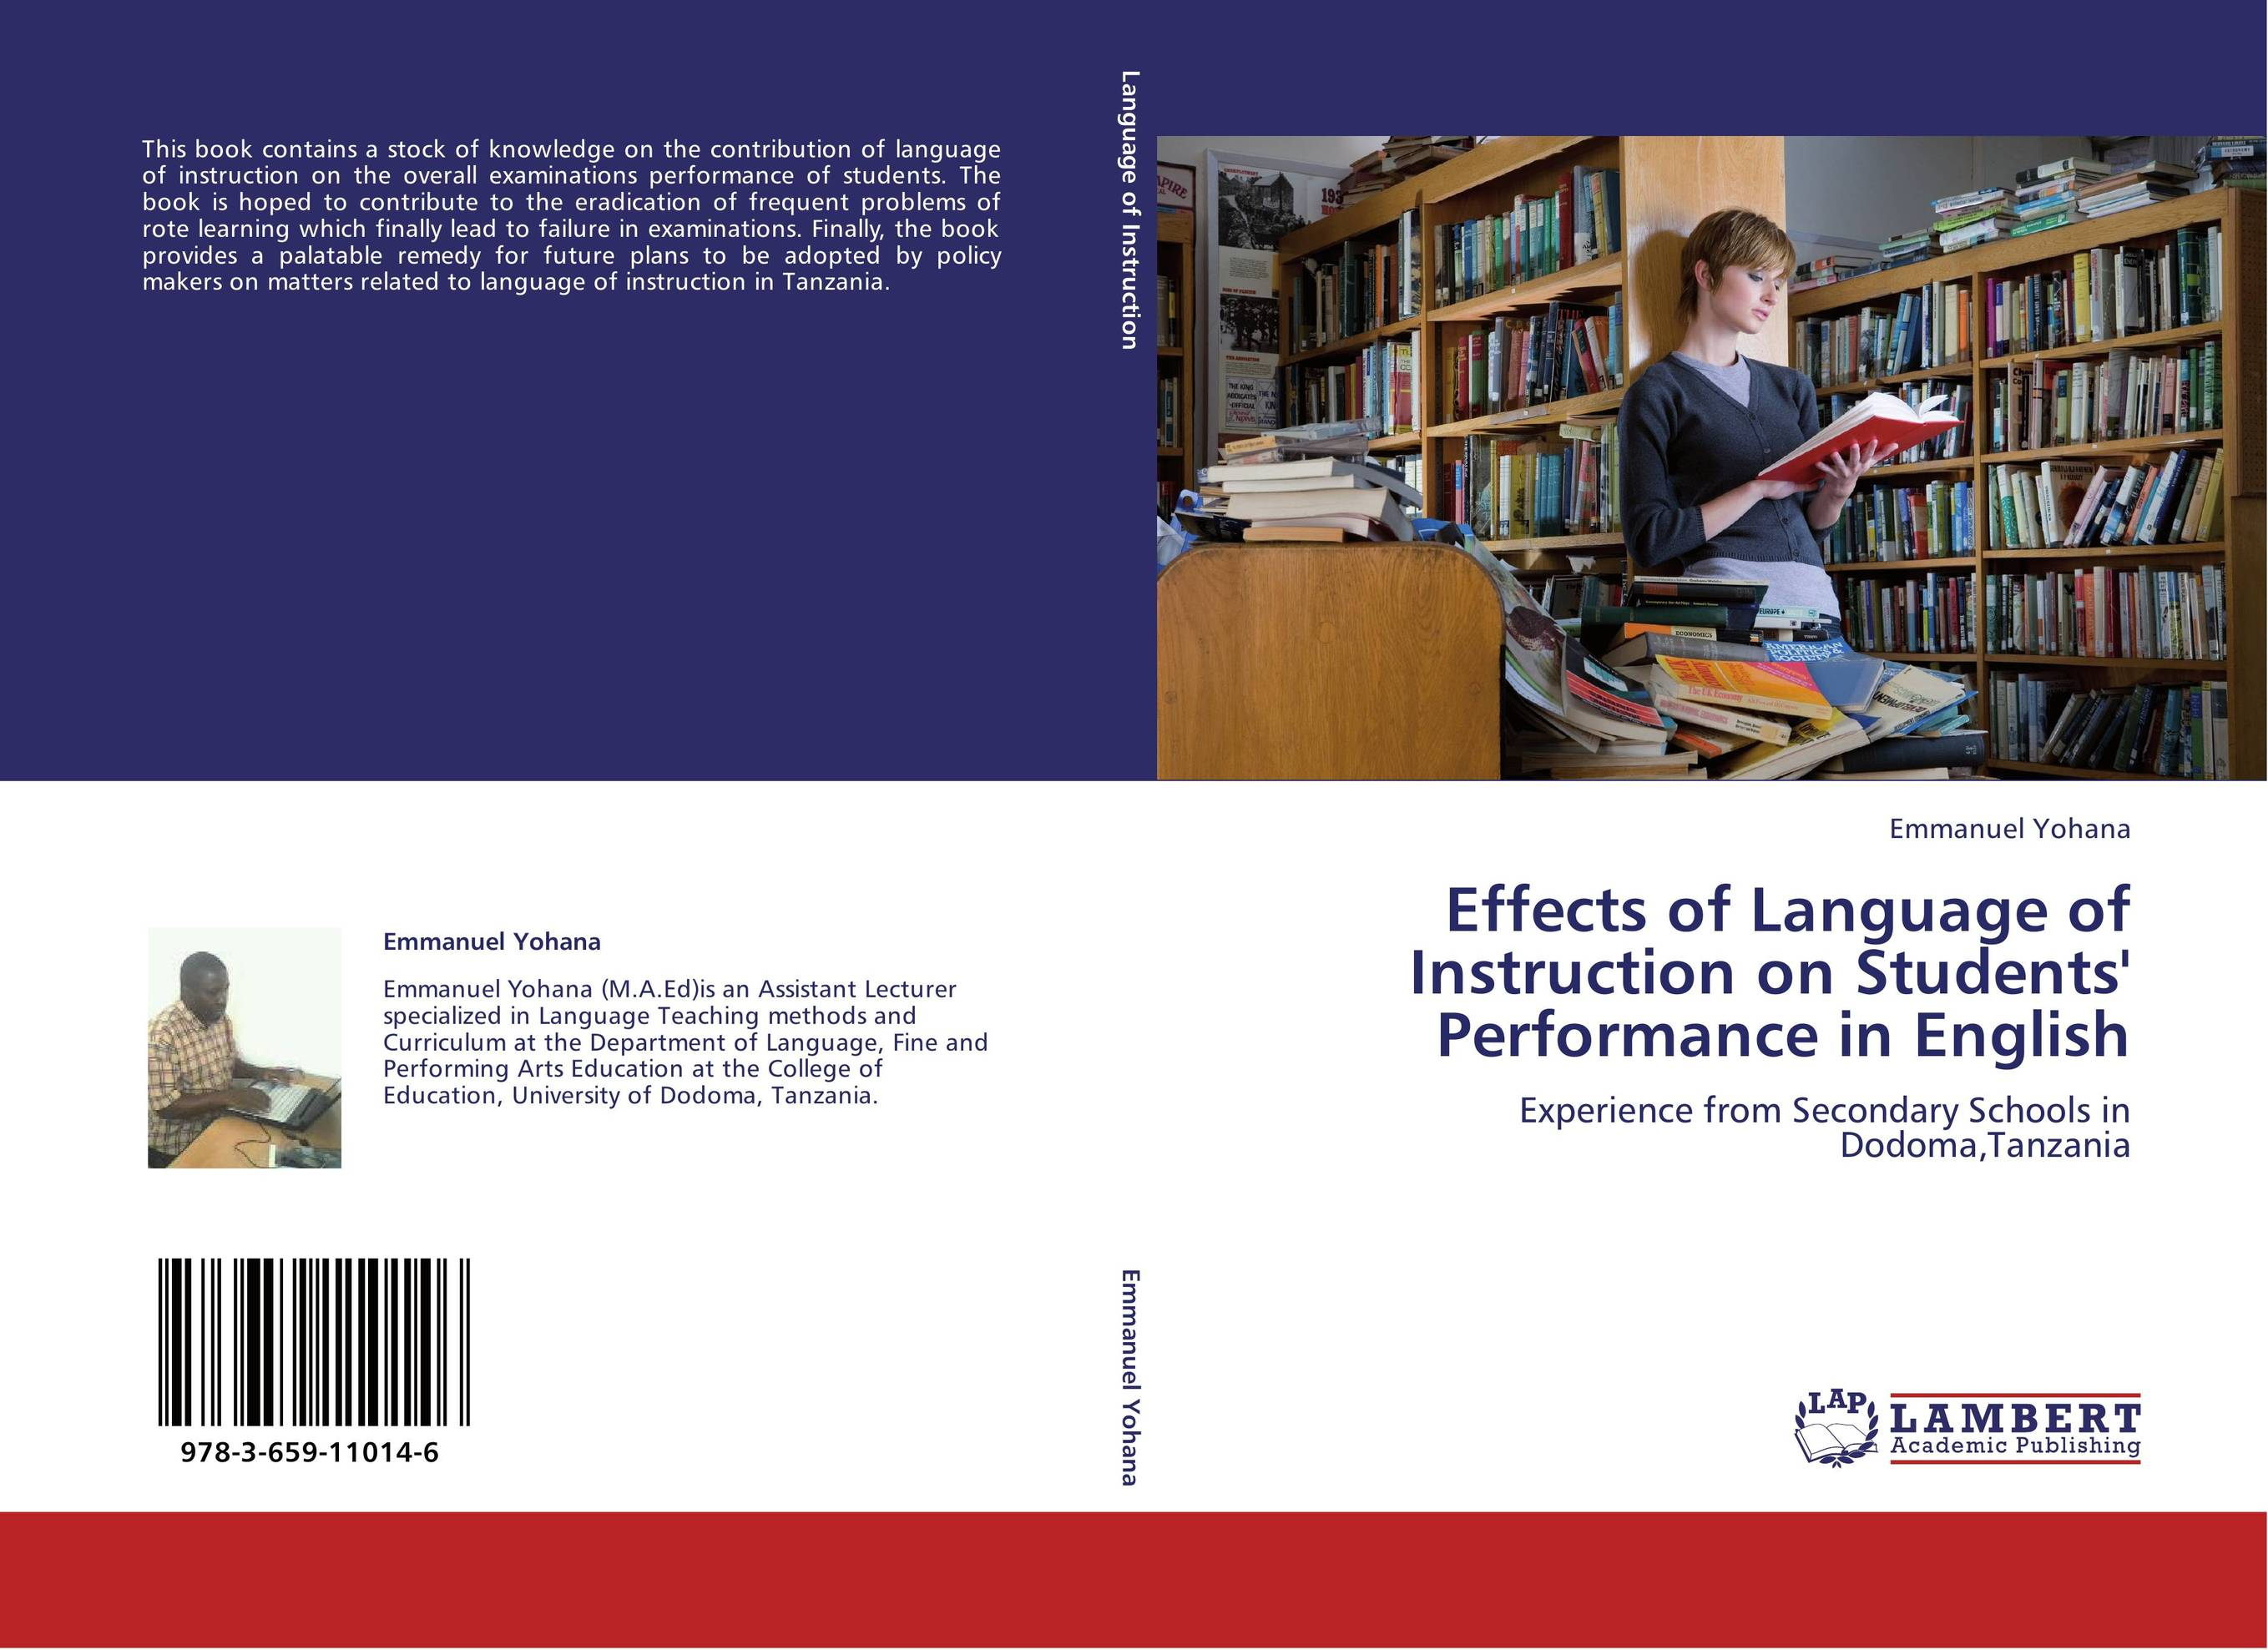 factors affecting students academic performance in english 11 essay Factors affecting employee motivation—what management needs to know abstract employee motivation plays a critical role in employee performance and productivity factors that affect the academic performance of the students staying at pic dormitory 3023 words | 13 pages.